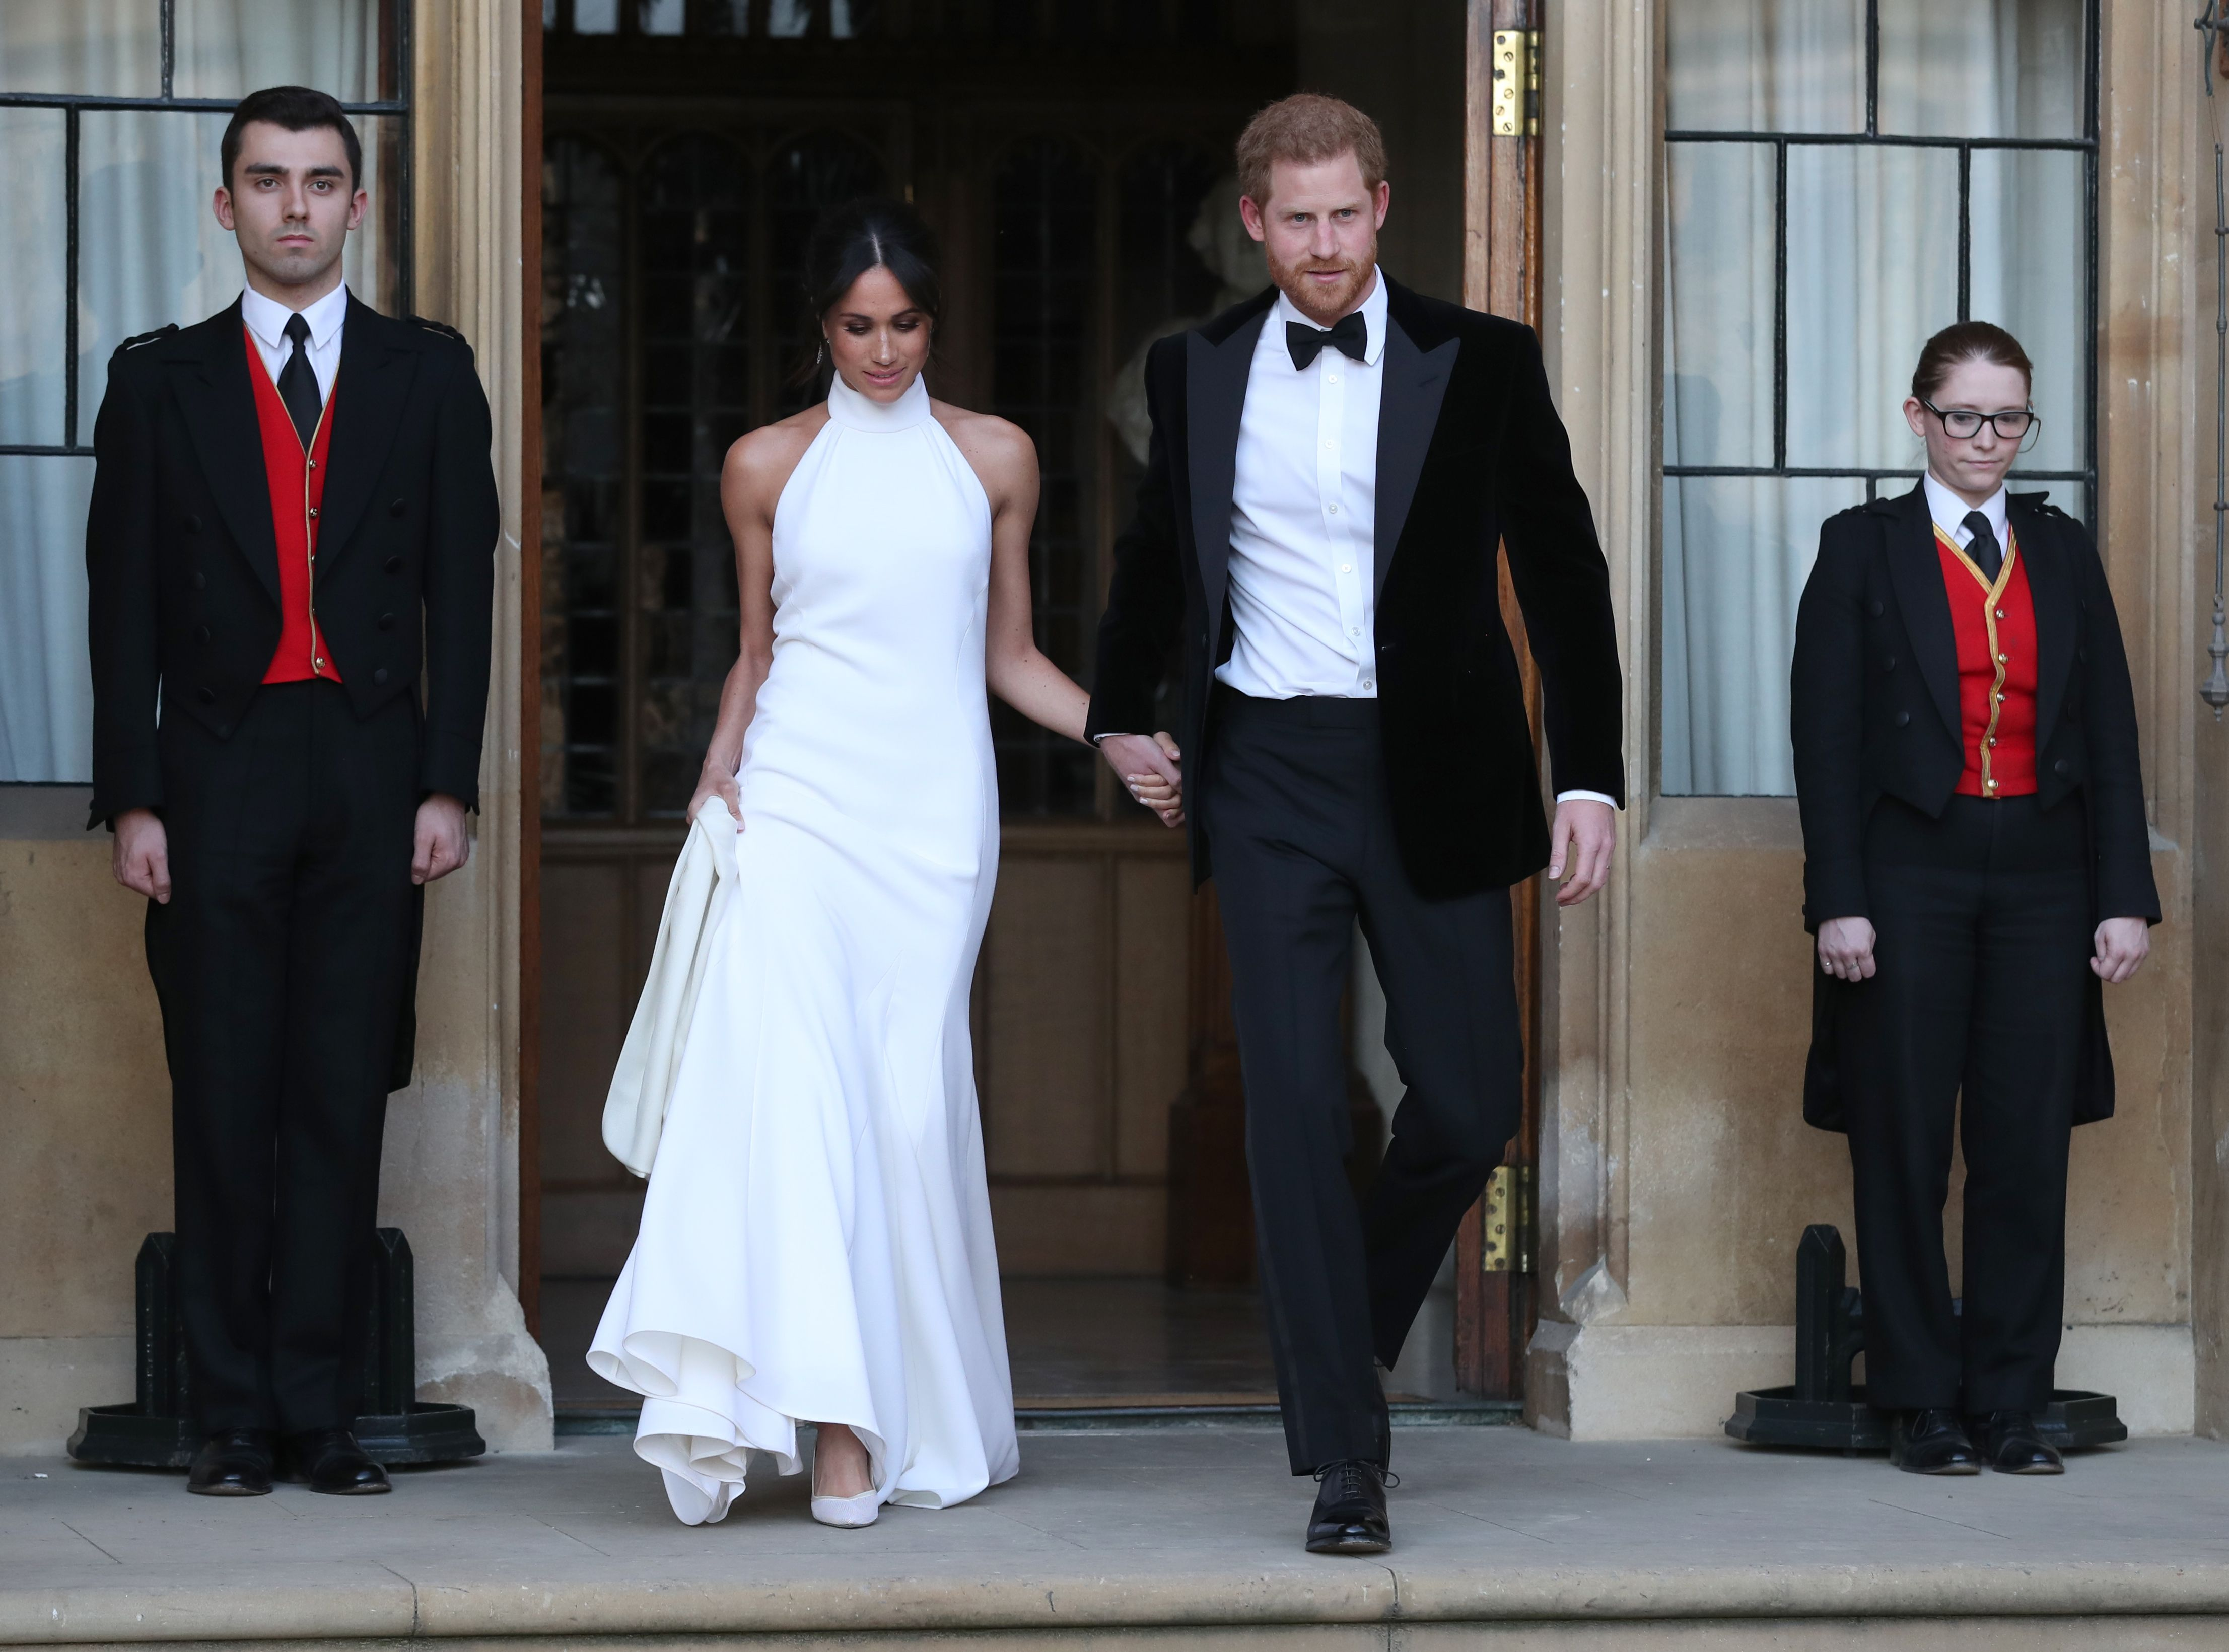 The Duchess of Sussex is the most Googled person of 2018